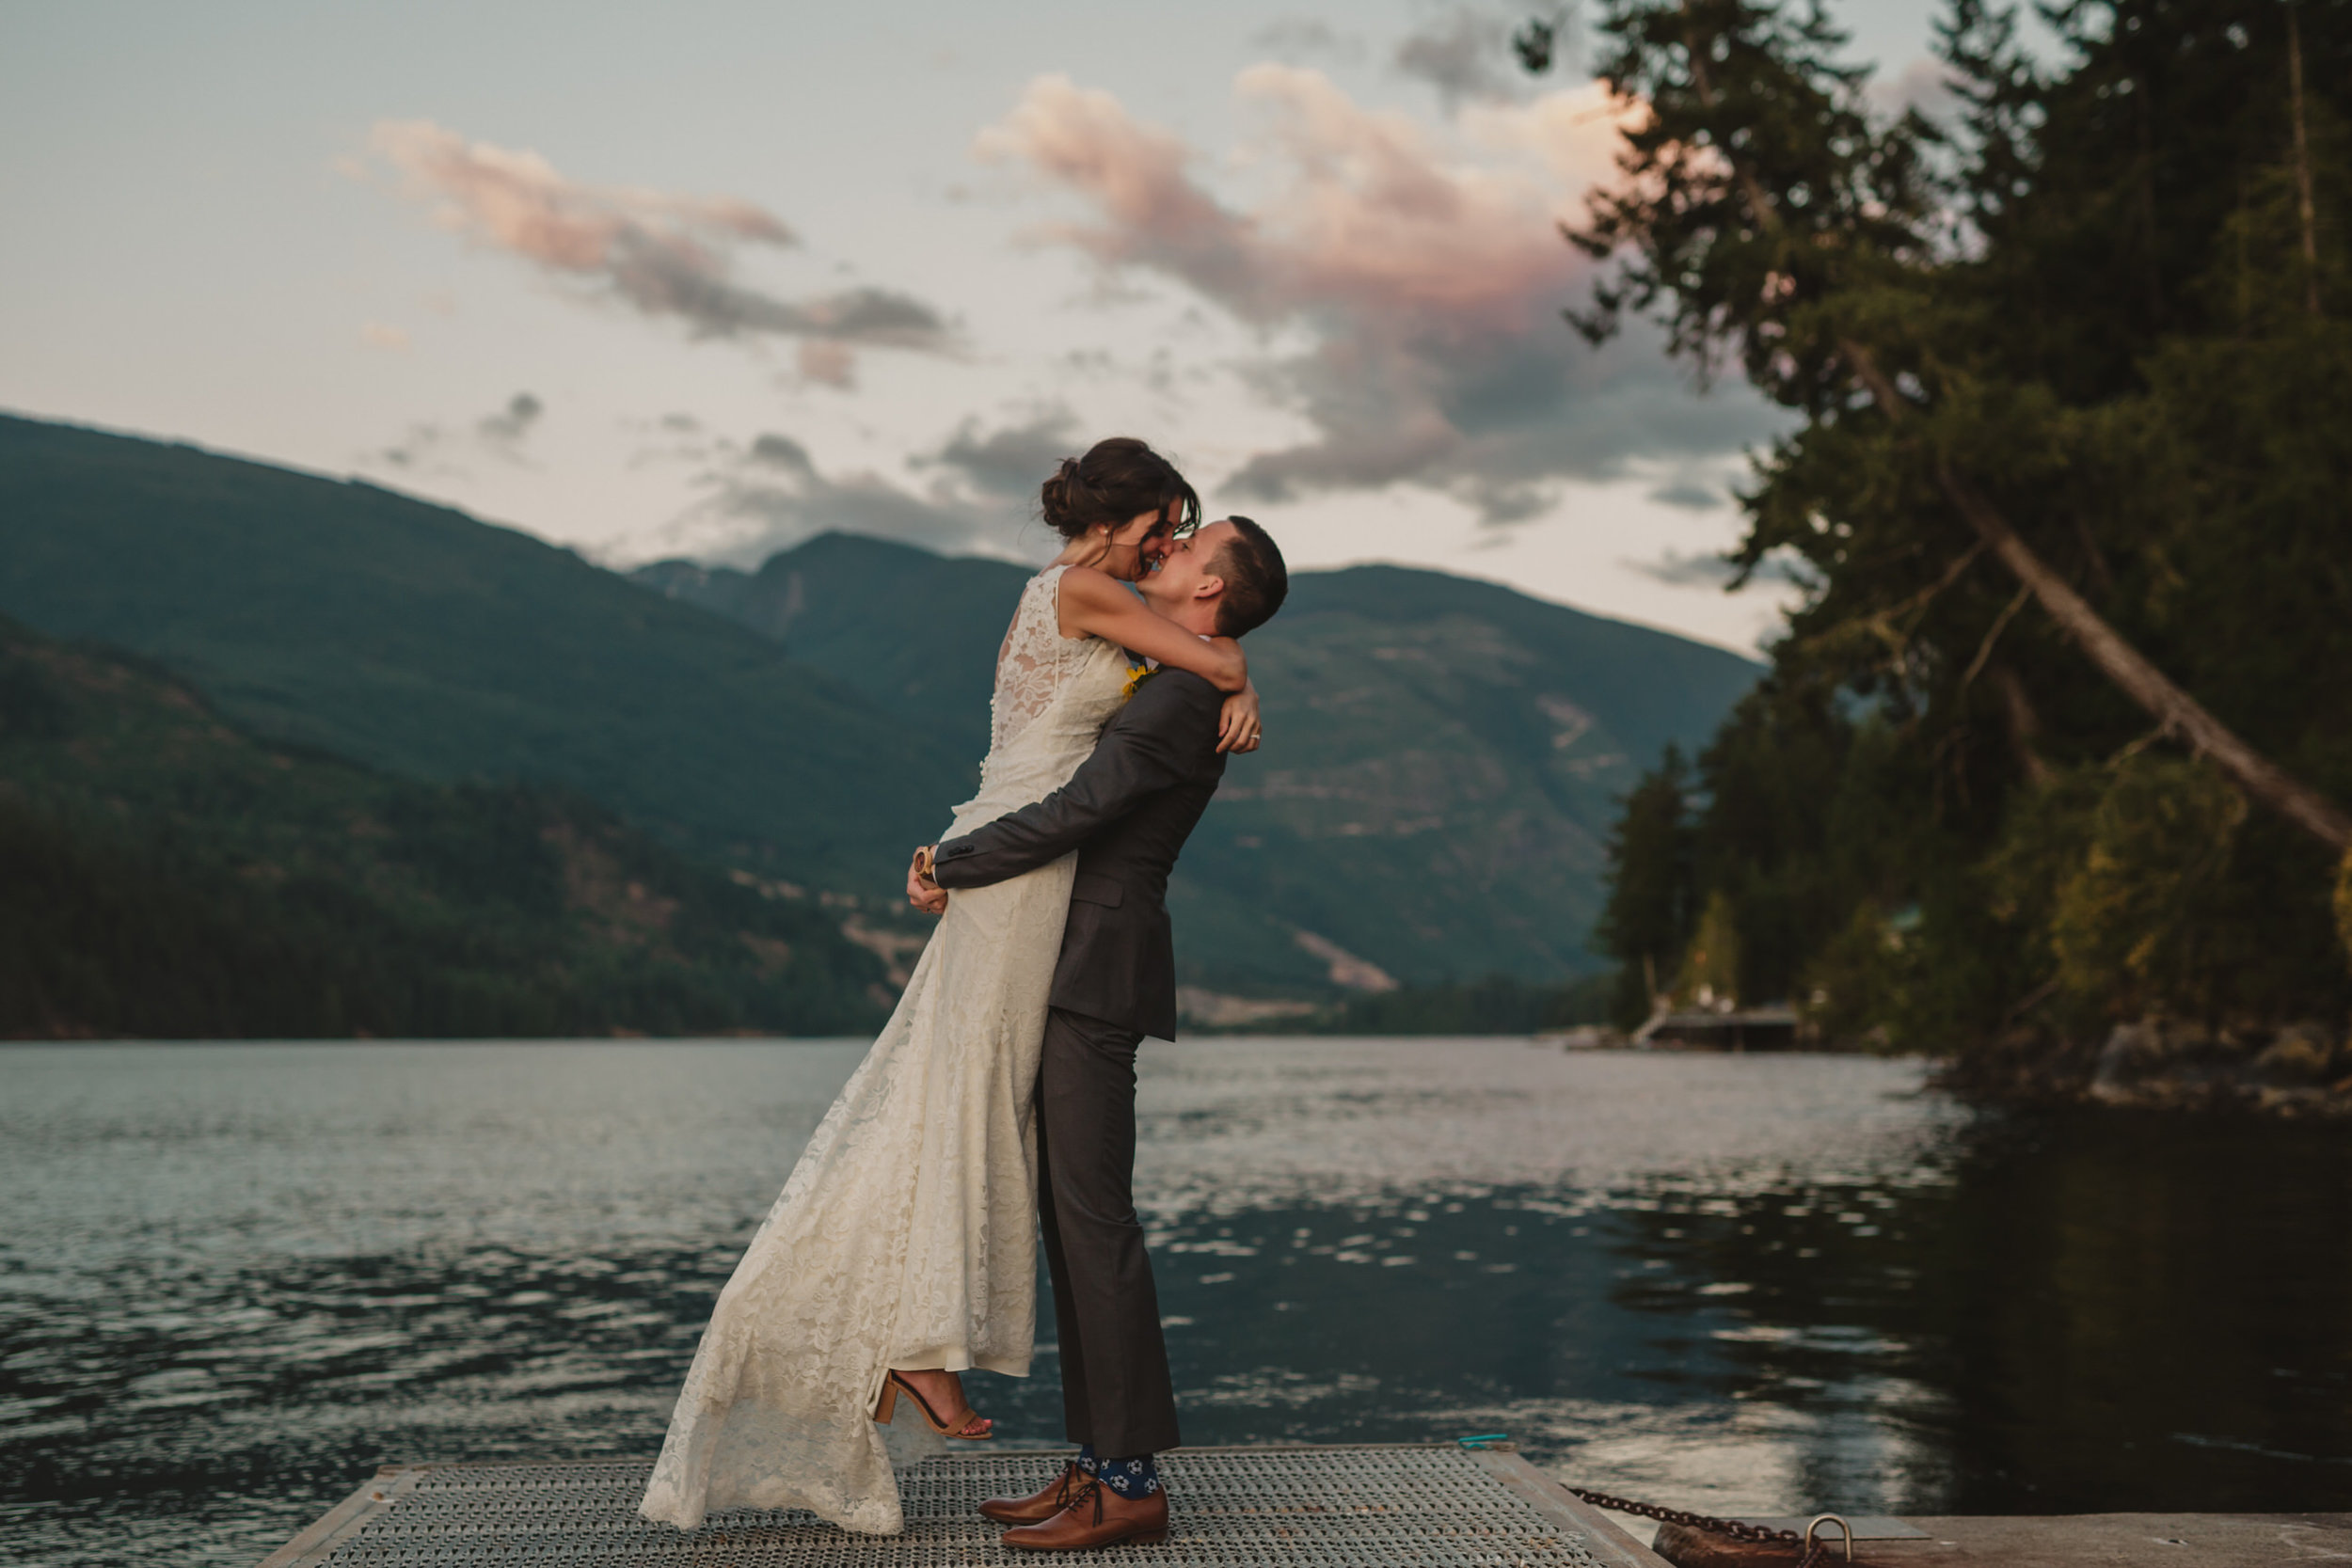 West Coast Wilderness Lodge Wedding Photos - Vancouver Wedding Photographer & Videographer - Sunshine Coast Wedding Photos - Sunshine Coast Wedding Photographer - Jennifer Picard Photography - IMG_1716.jpg